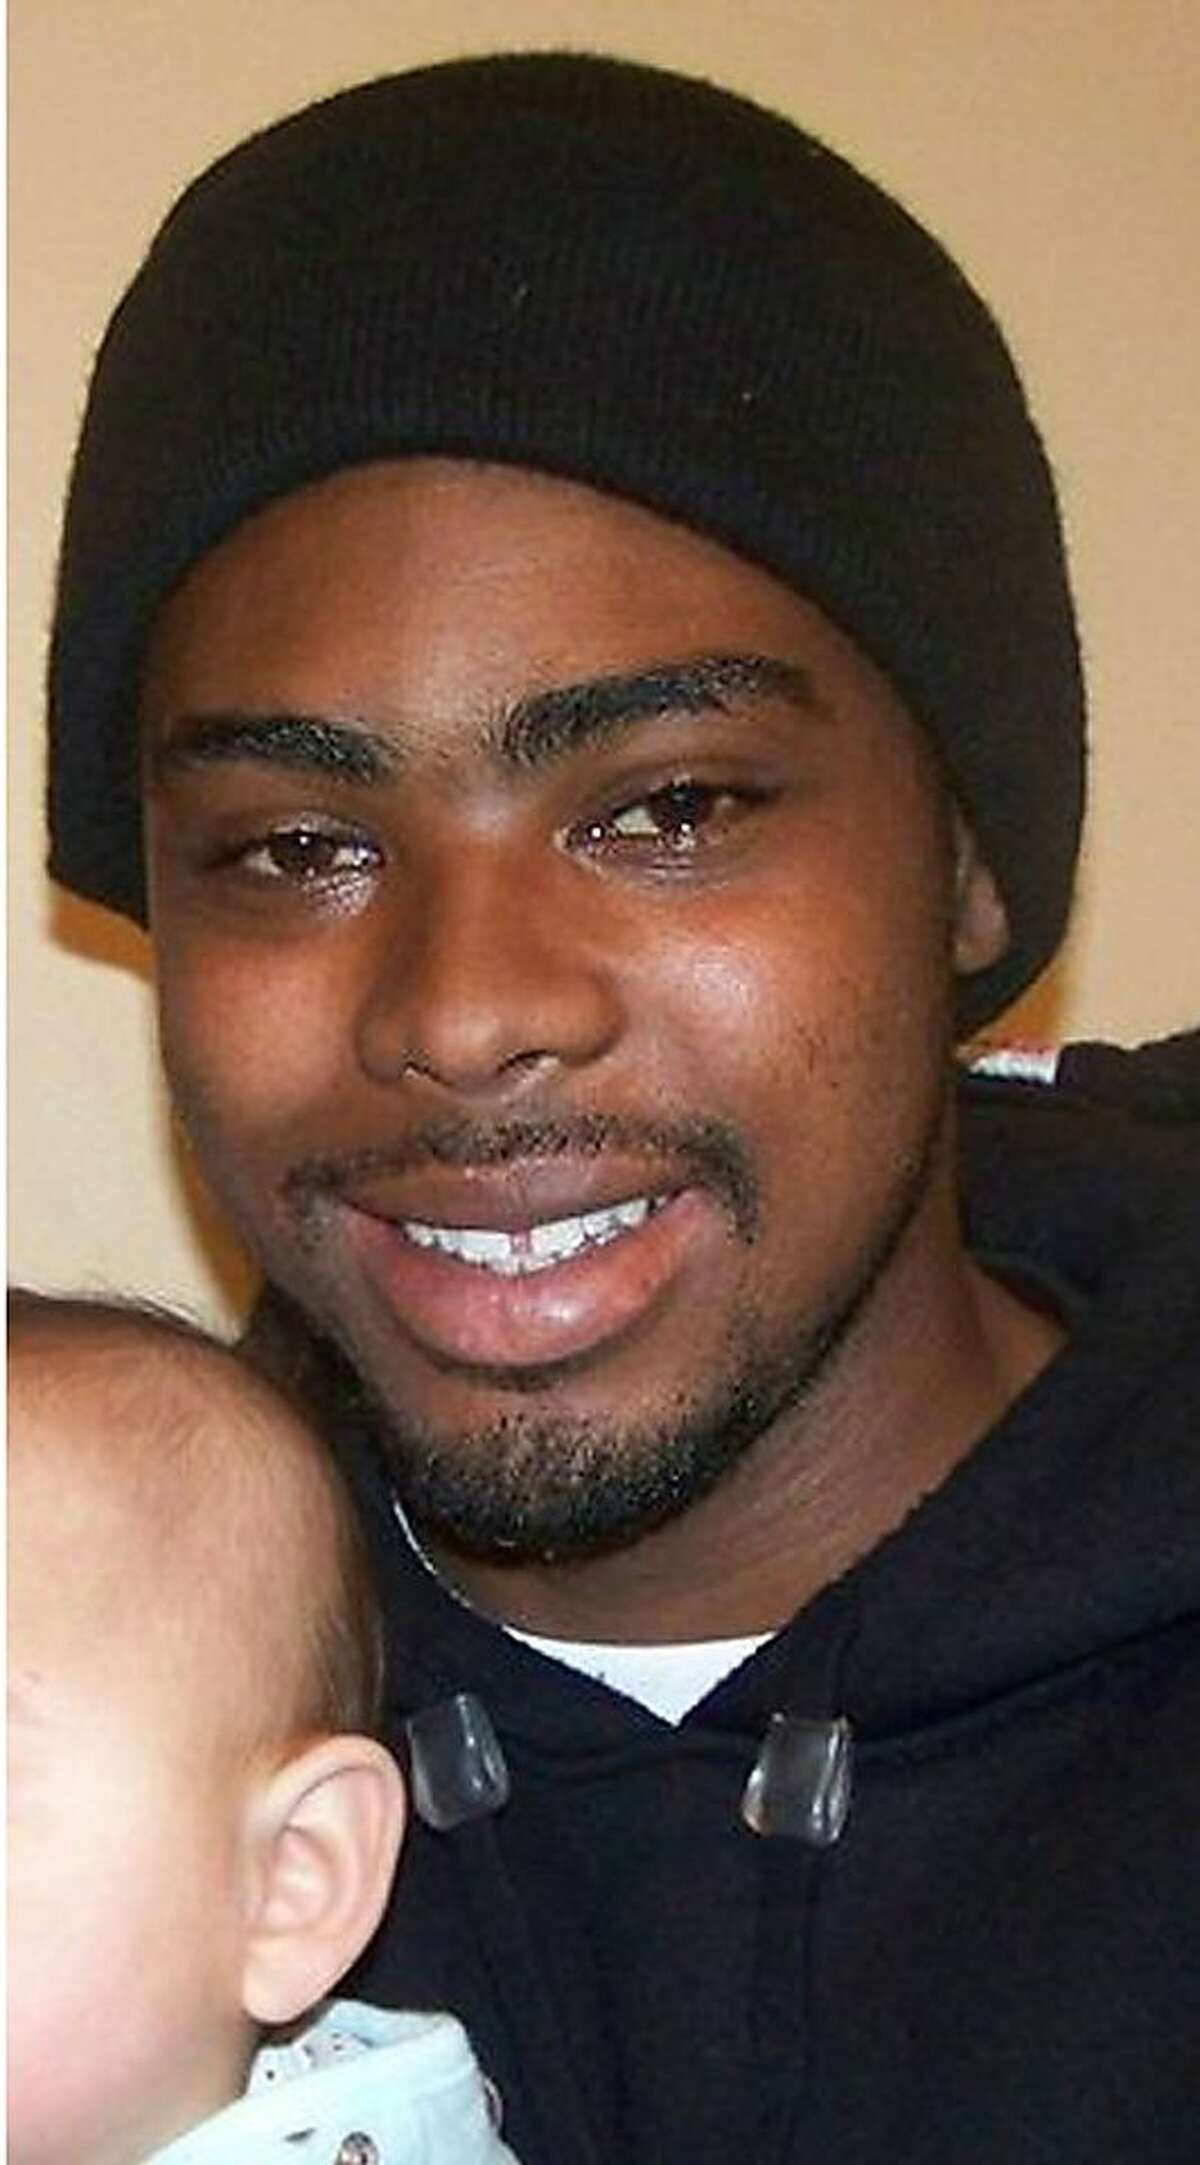 FILE - This undated family photo provided by the Law Offices of John Burris shows Oscar Grant, a 22-year-old transit rider who was shot and killed by Bay Area Rapid Transit police on New Year's Day 2009.